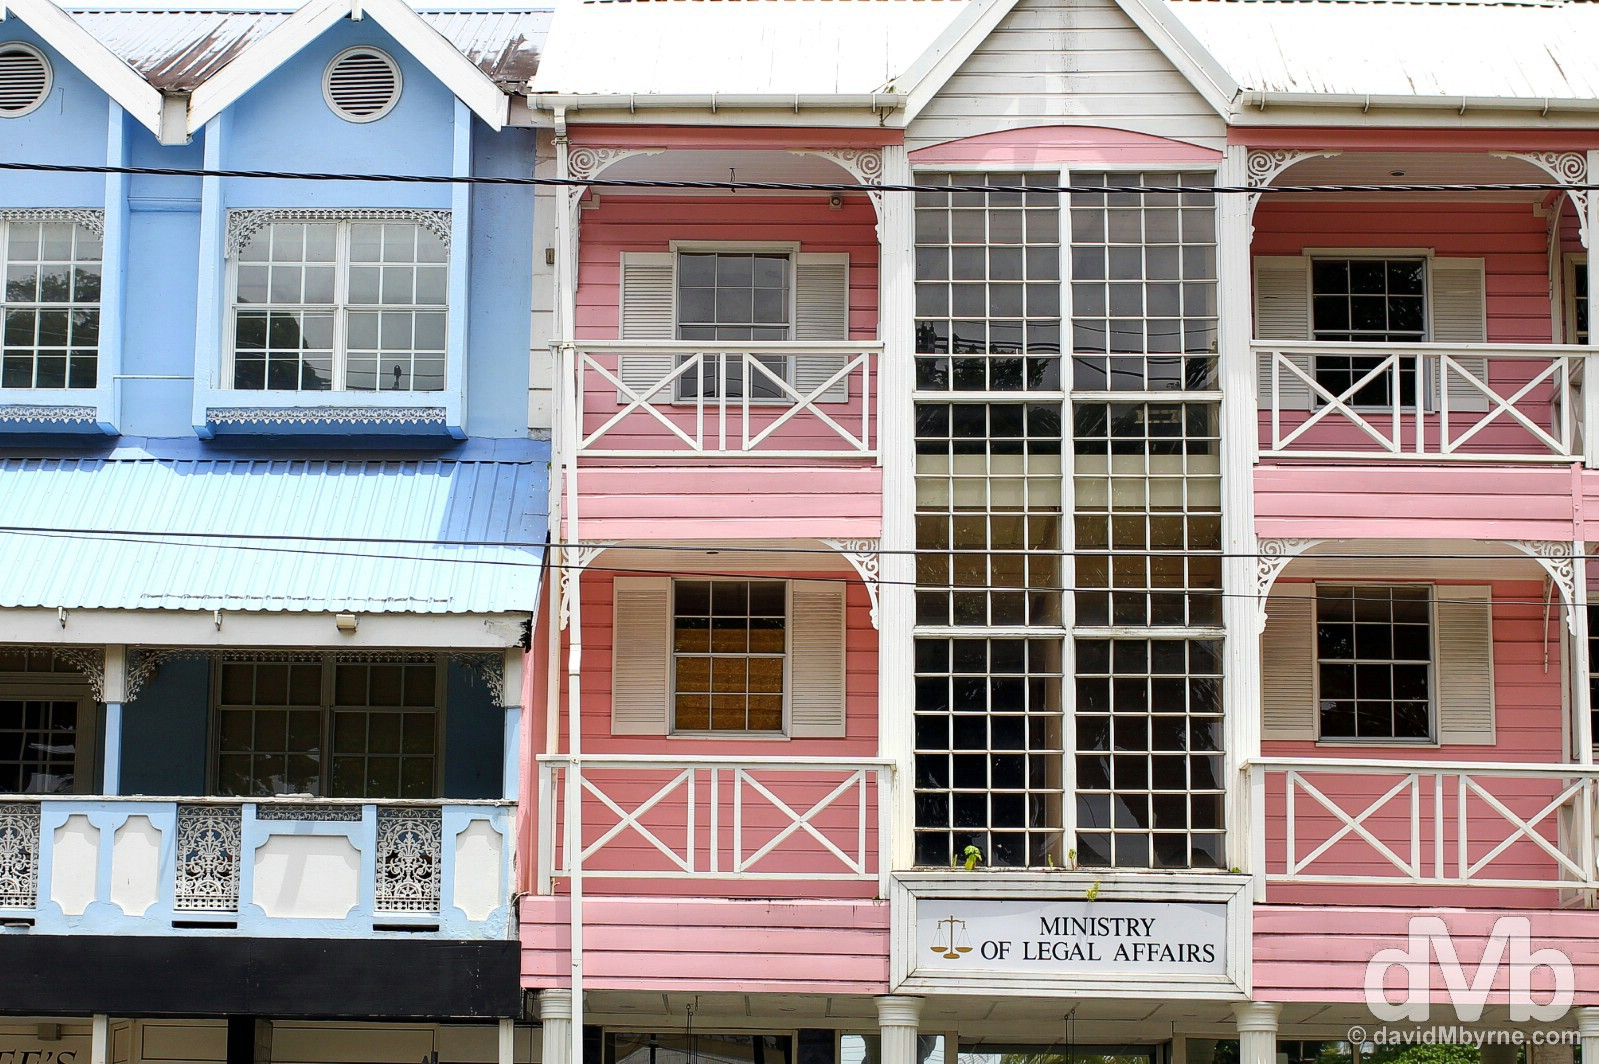 Wooden buildings lining Bourbon Street in Castries, St. Lucia, Lesser Antilles. June 14, 2015.